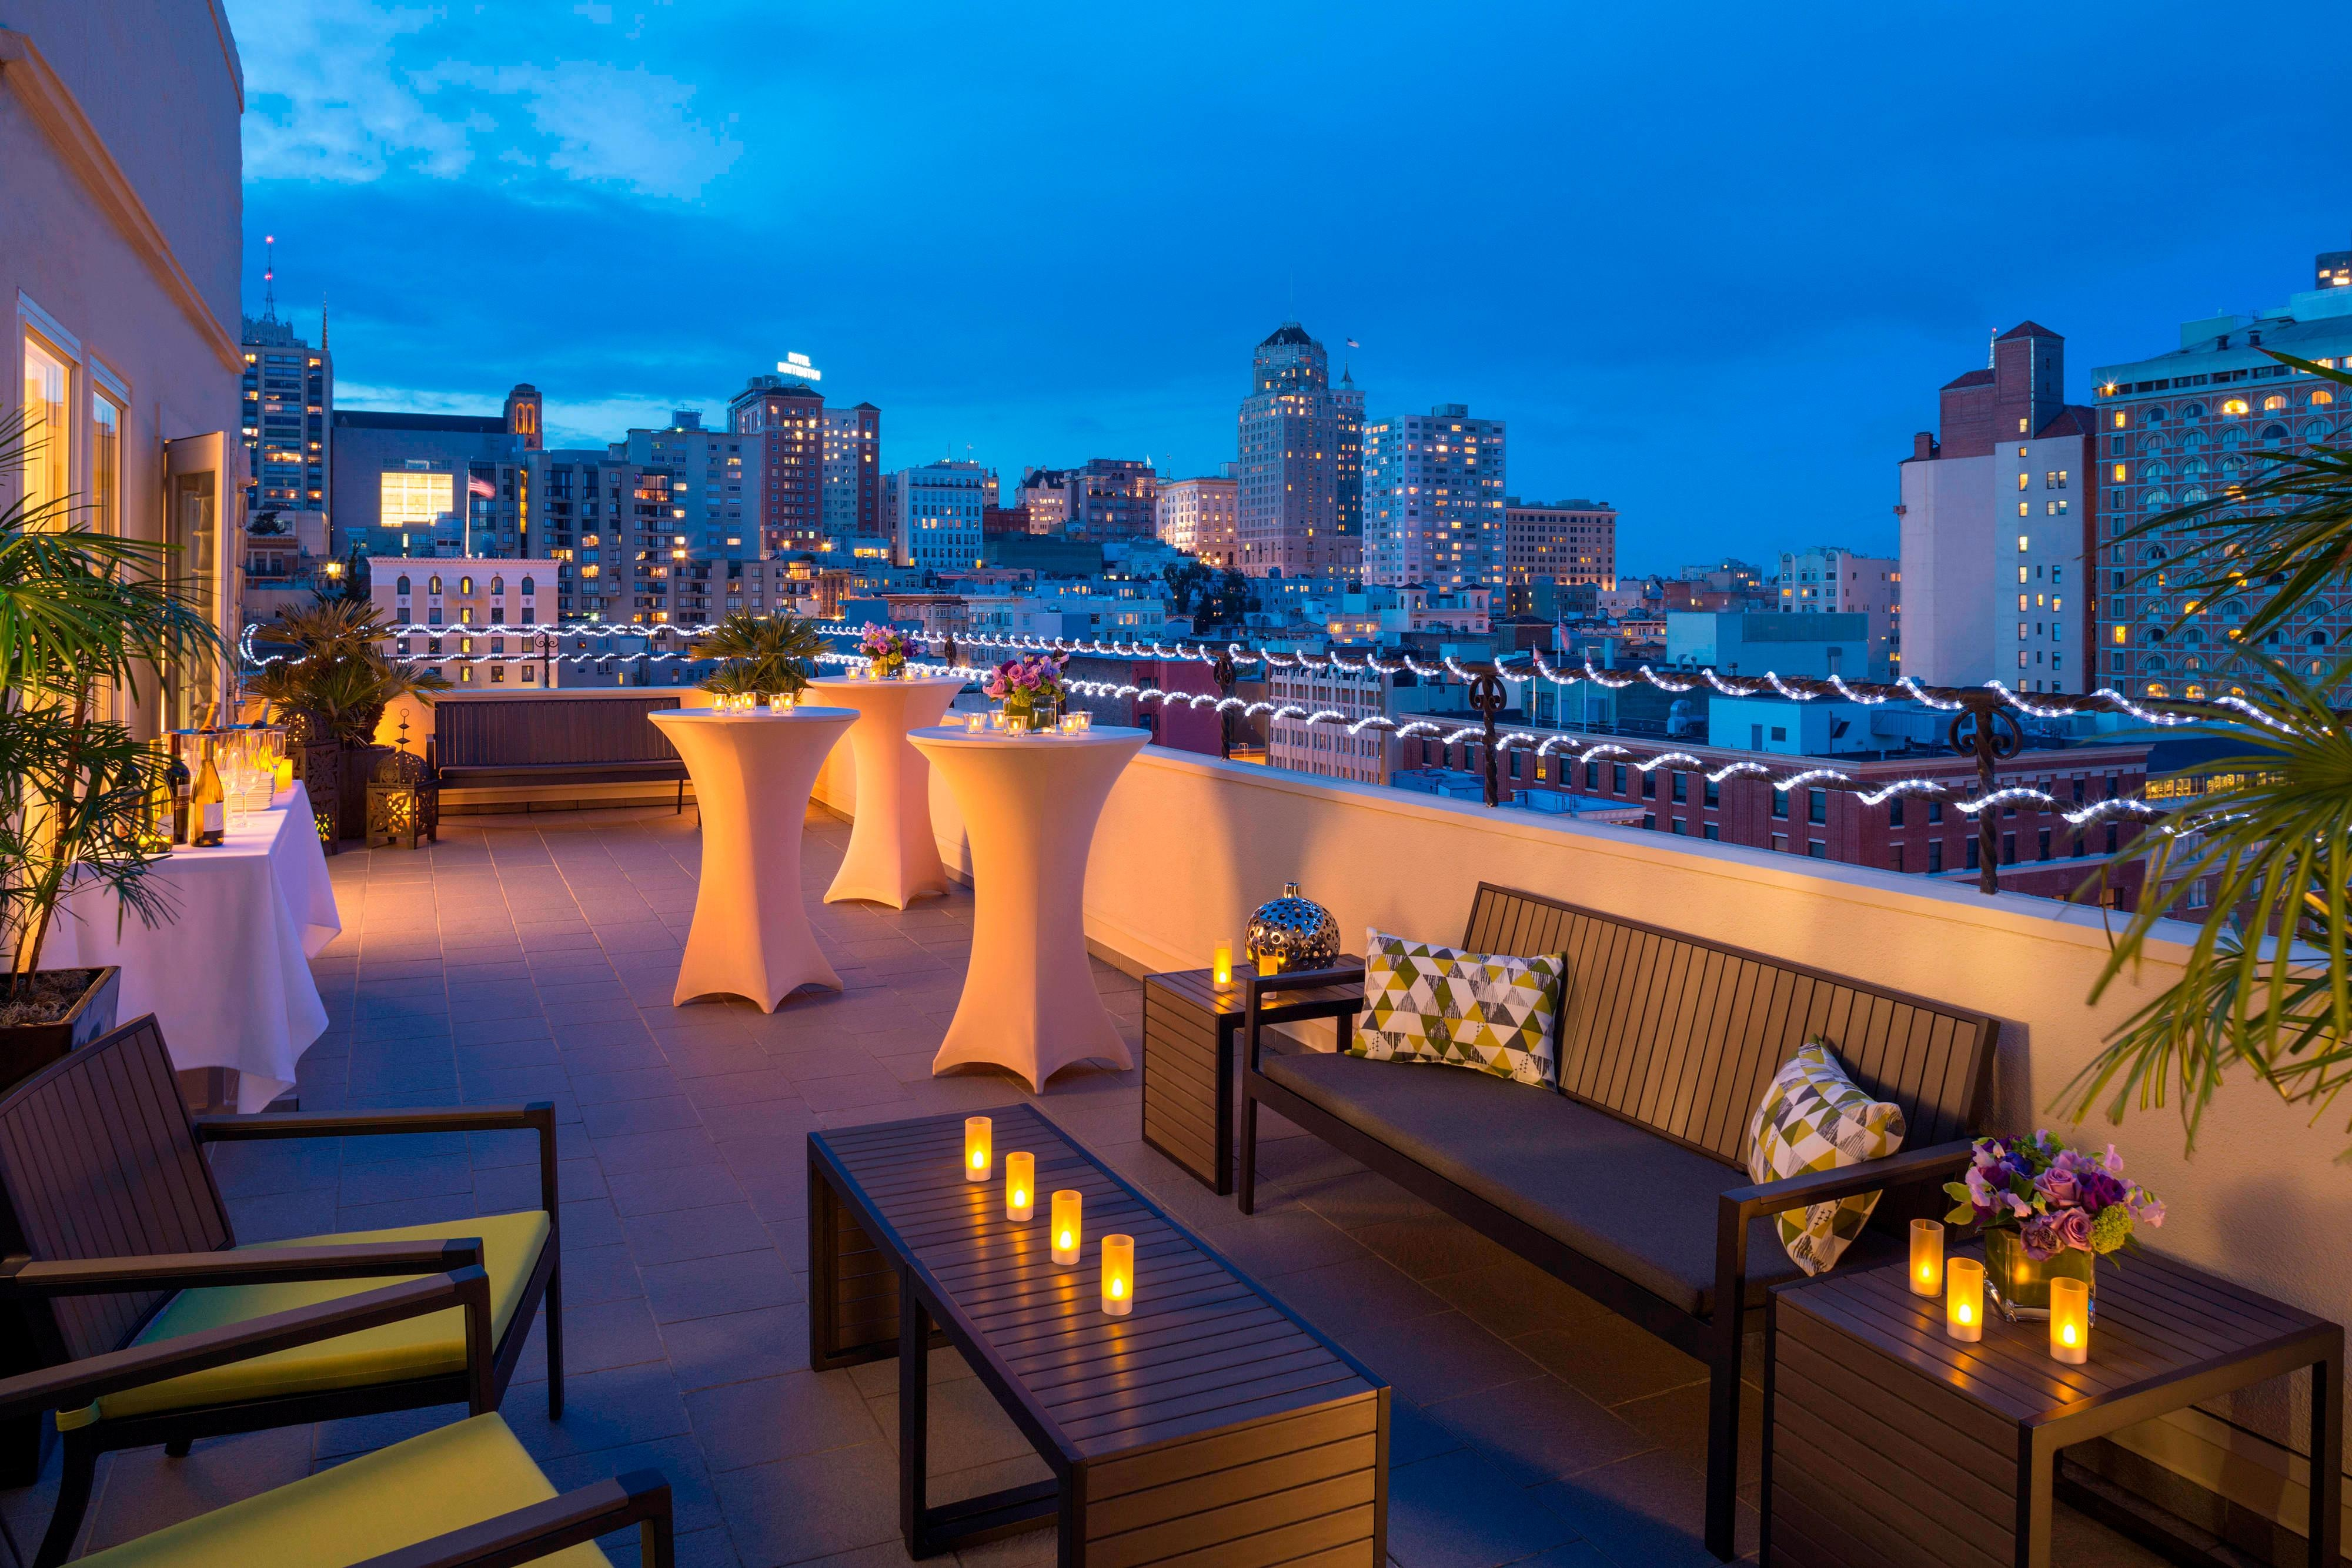 Rooftop Receptions in San Francisco